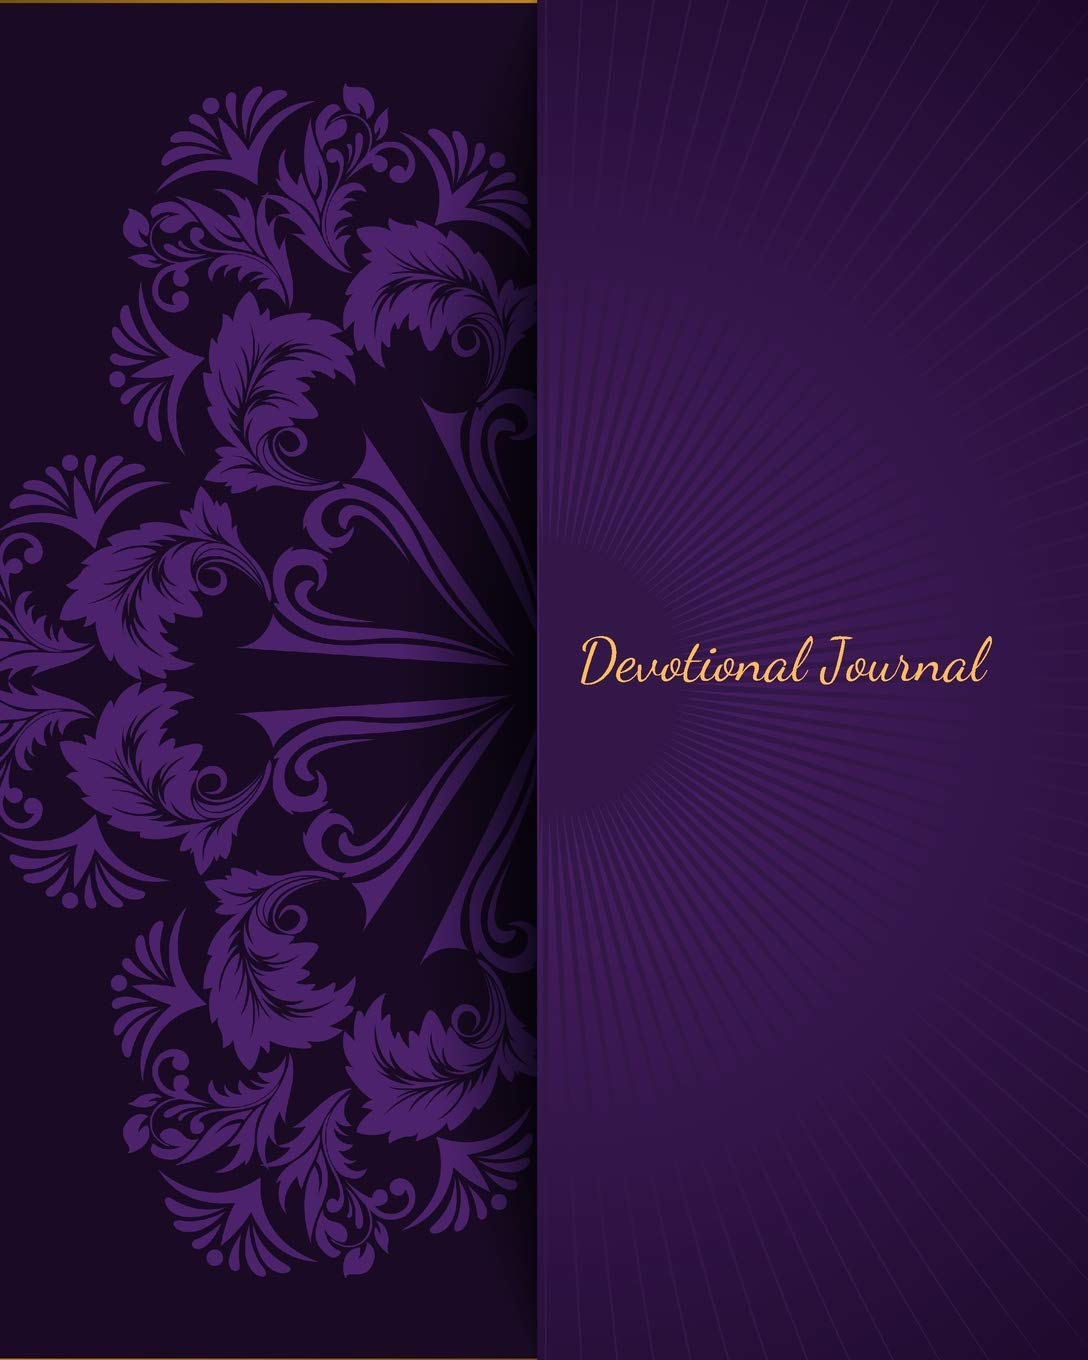 Devotional Journal: Portable Christian Gift Journal Notebook